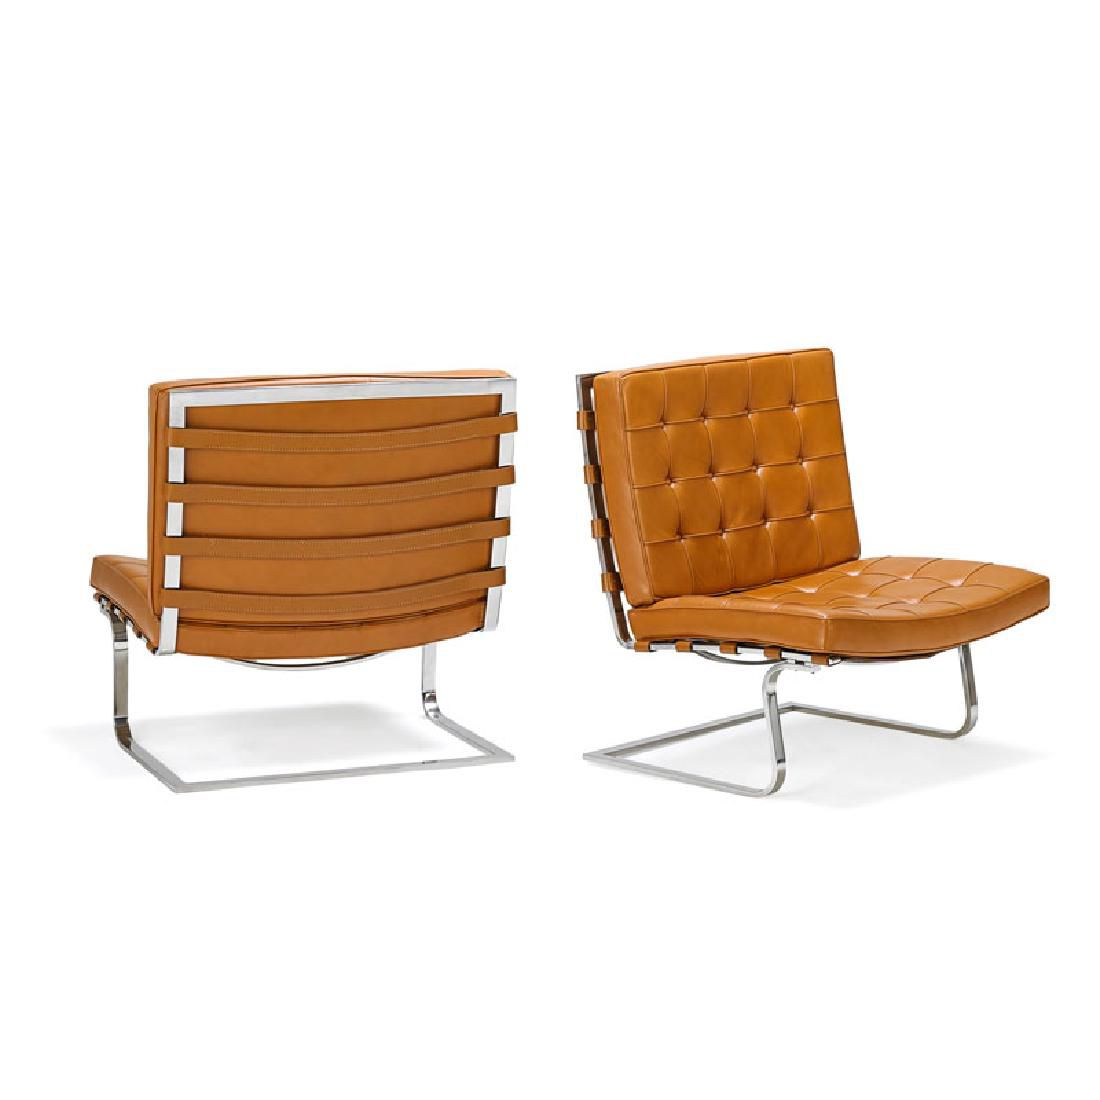 Pair of Ludwig Mies Van Der Rohe Tugendhat lounge chairs with cantilevered seats for Knoll Associates, c. 1970s.